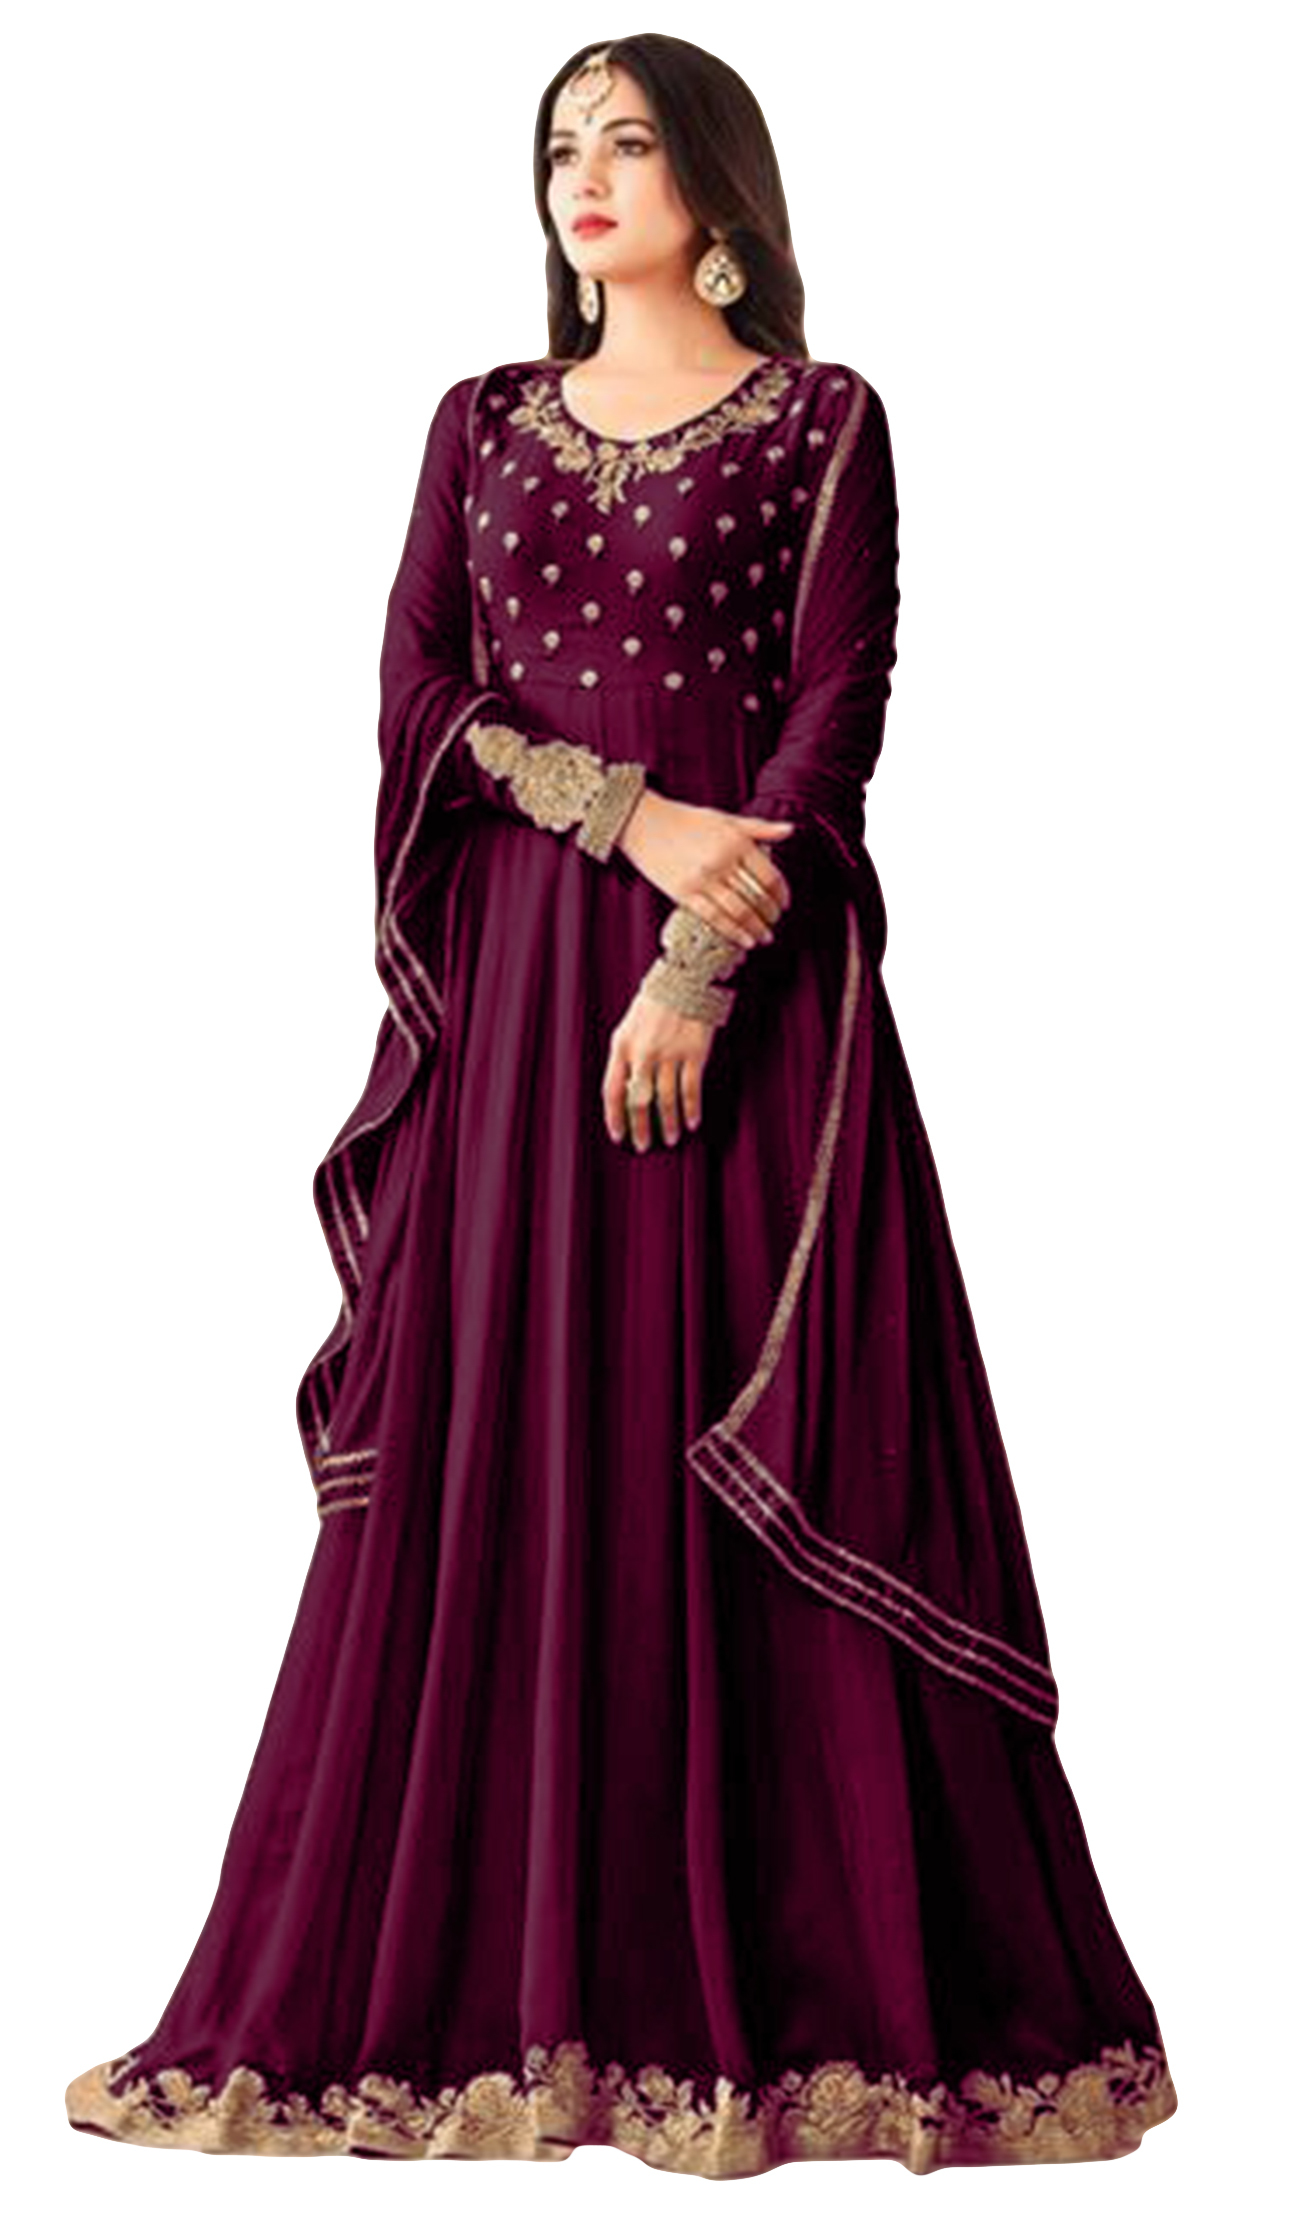 5ca75ca272 Stylish Jacket Party Wear Georgette Anarkali Suits, Rs 2700 /piece | ID:  17620288097